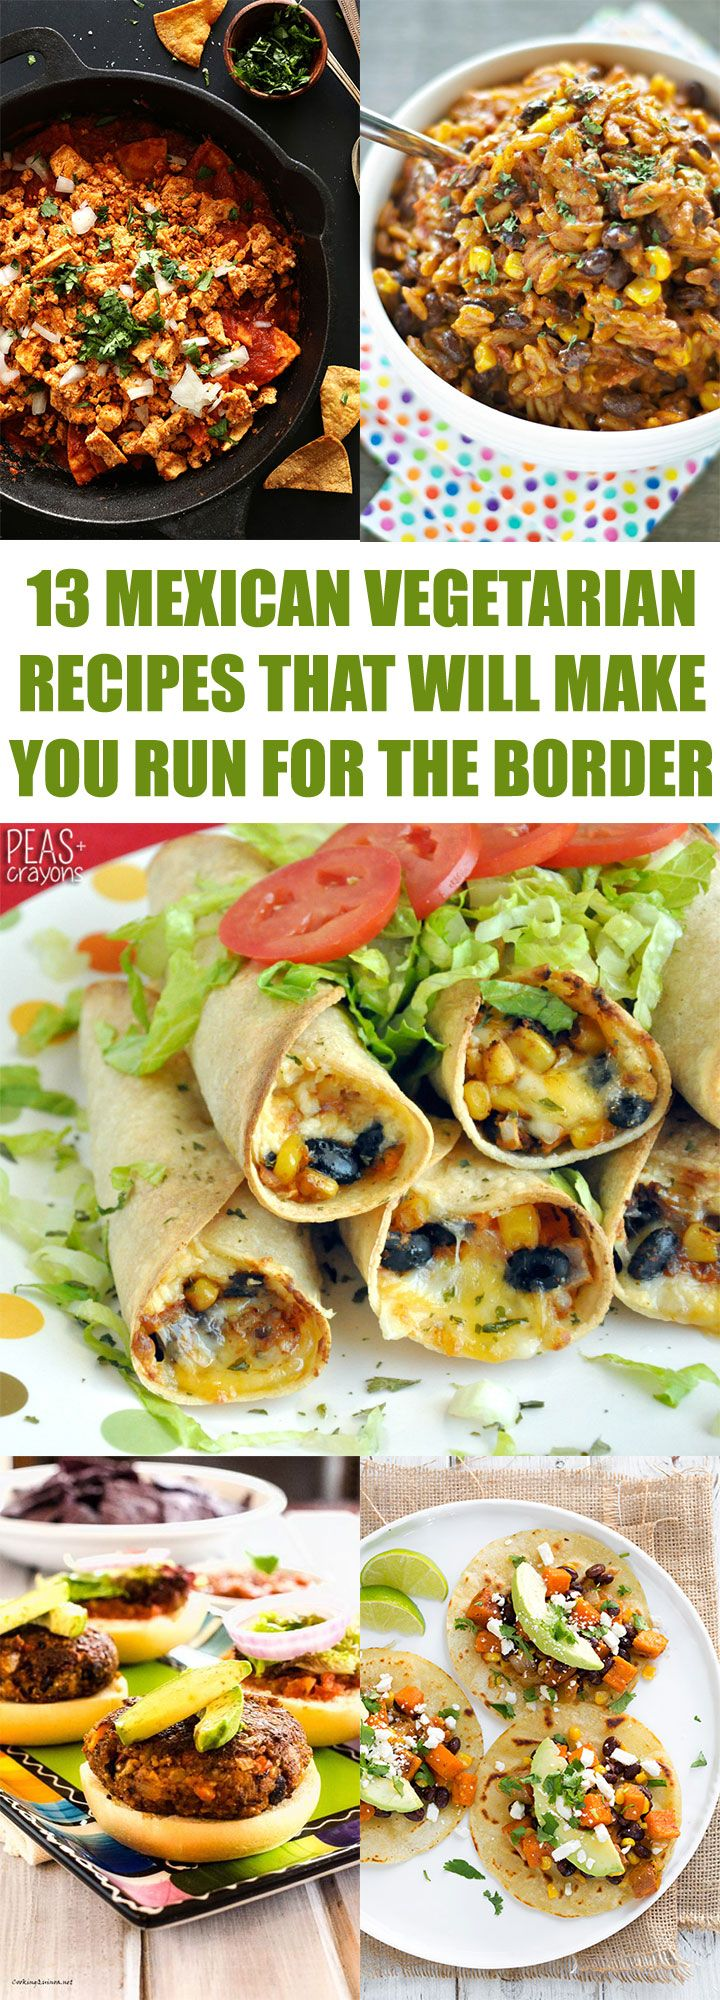 13 Mexican Vegetarian Recipes That Will Make You Run For The Border